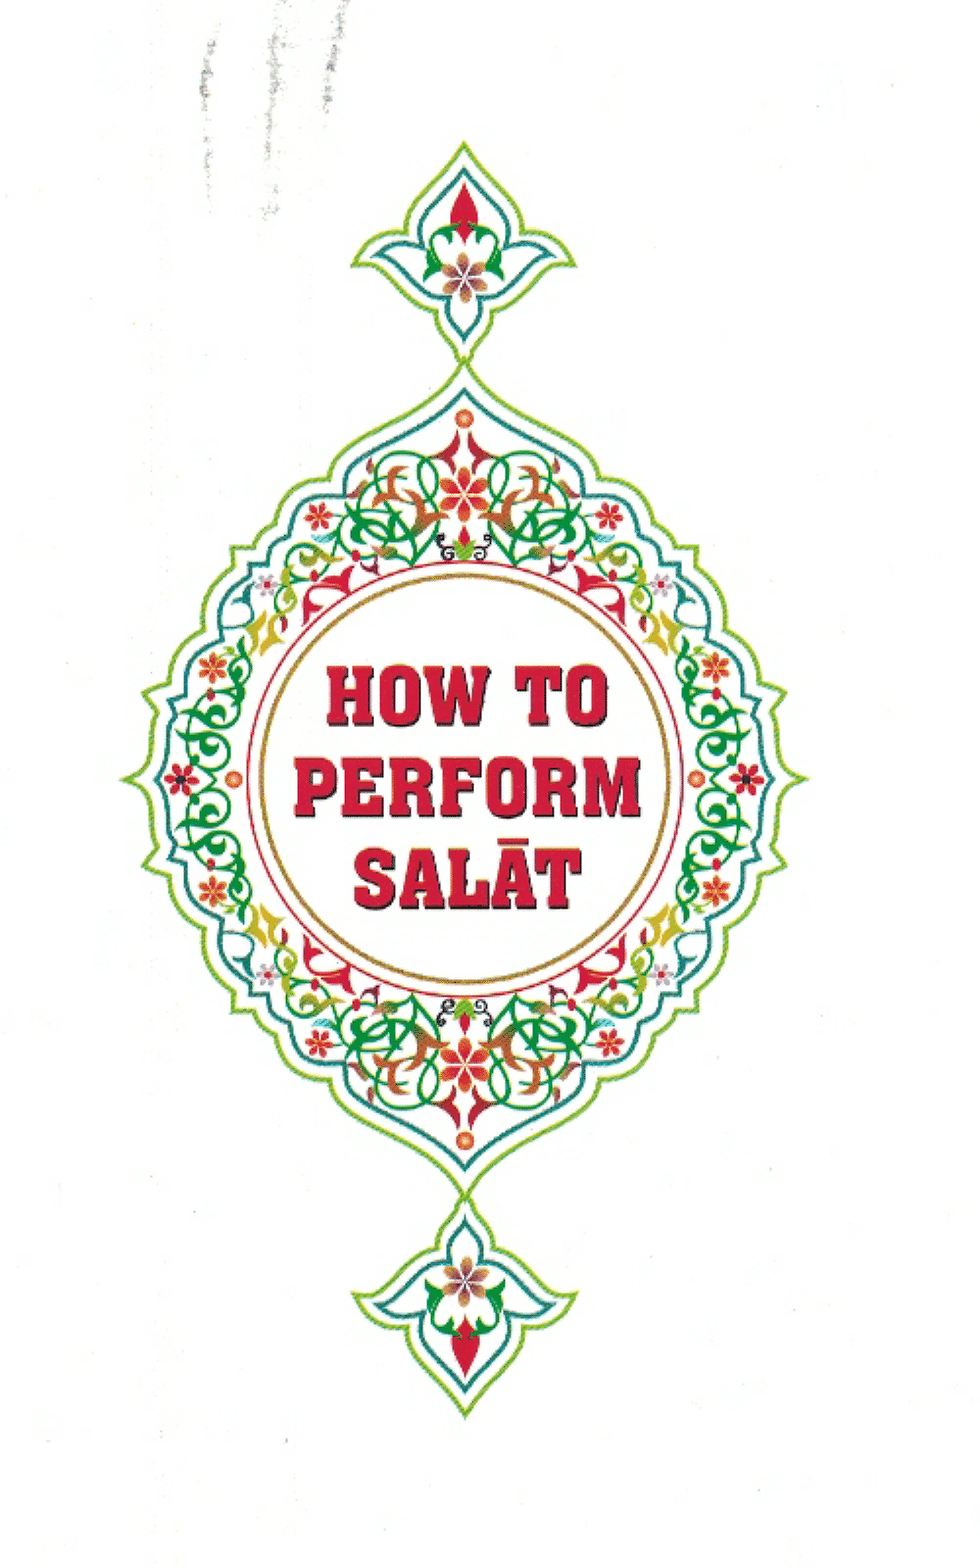 How to perform Salat-01.png